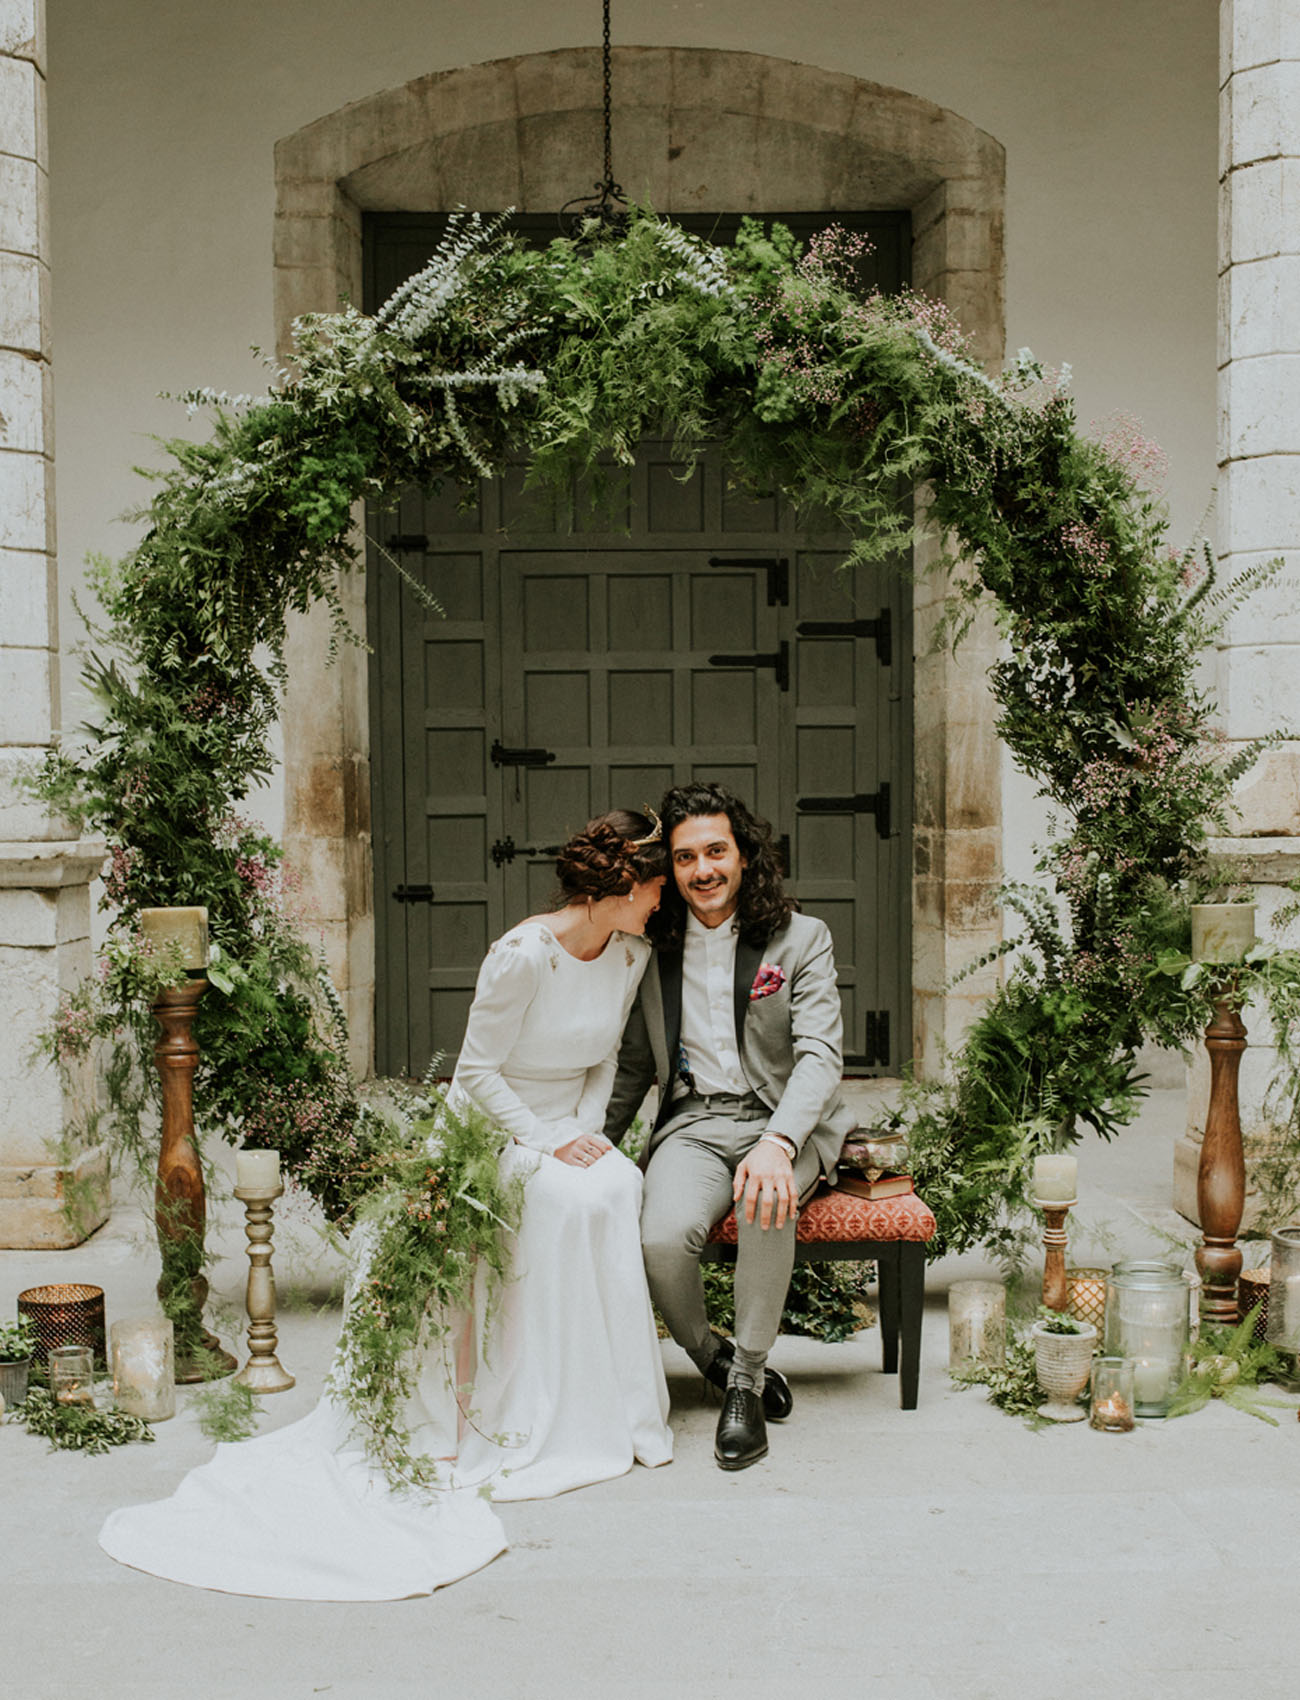 OMG. This round greenery backdrop is everything!